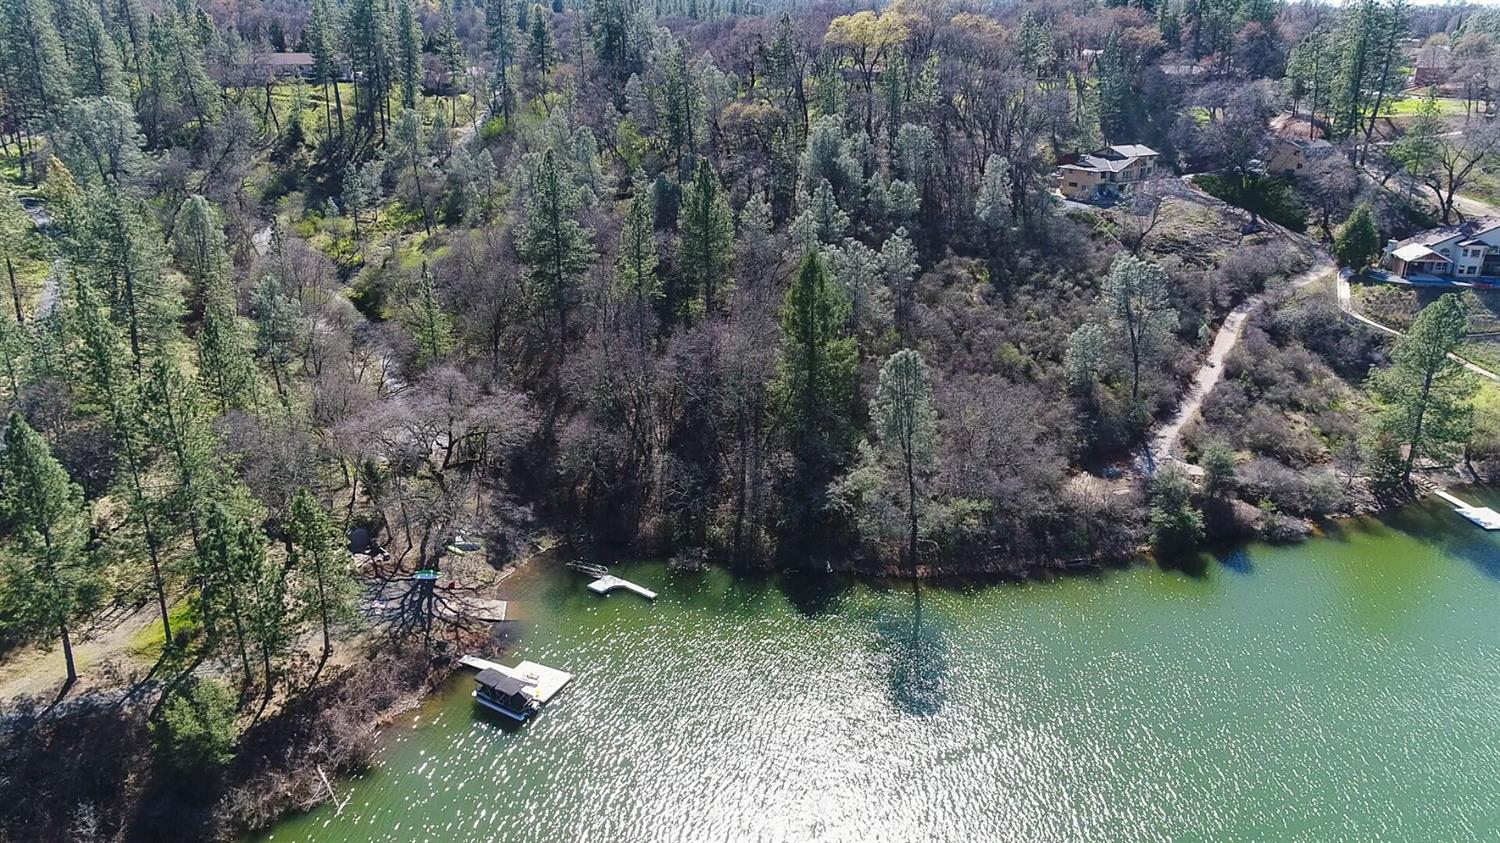 DREAMS DO COME TRUE, not Once But Twice! Rare LAKE COMBIE PROPERTY. Water Lake Frontage, Lake Combie Access, and not just One but TWO PARCELS (sold separately)! Own Both parcels and secure entire lake frontage for privacy, and bring both properties to their Ultimate Glory! This 2.26 Acre Property is a Hidden Gem of Meadow Vista! The neighboring parcel is 3.23 Acres with a Home with Lake Frontage also for sale!